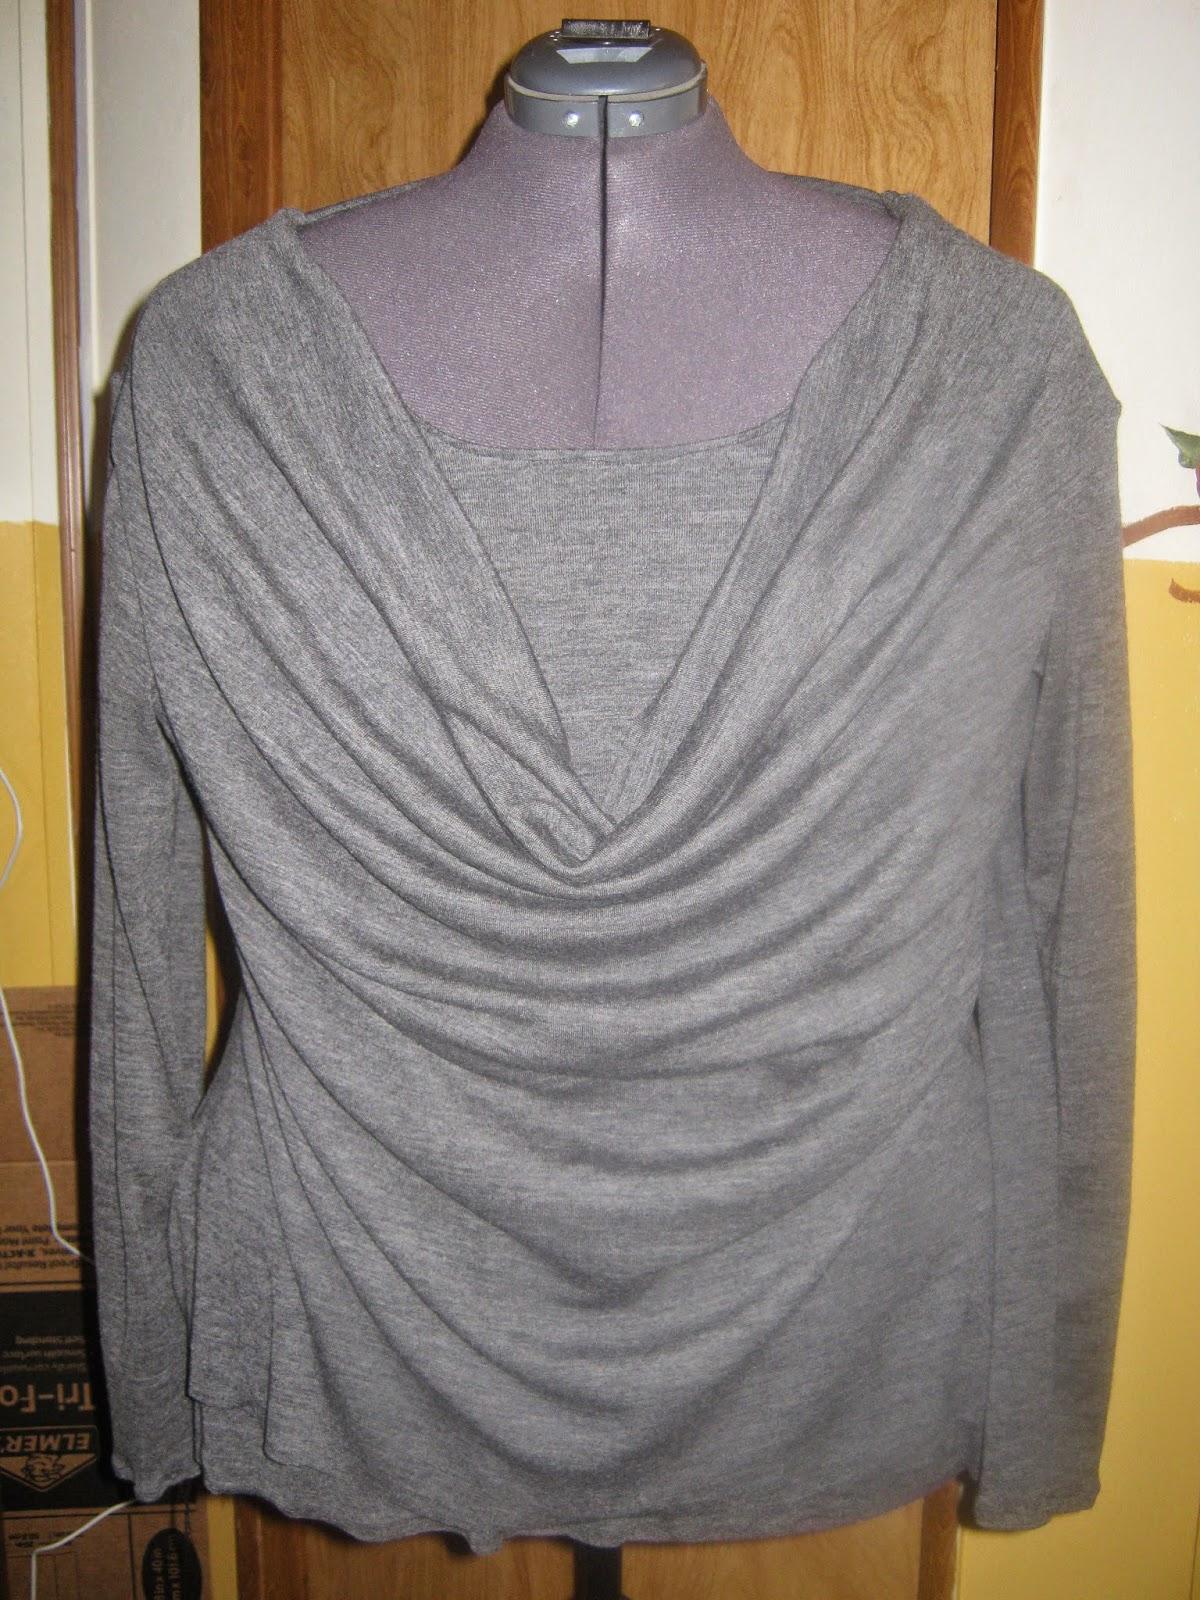 grey knit cowl neck top www.sewplus.blogspot.com